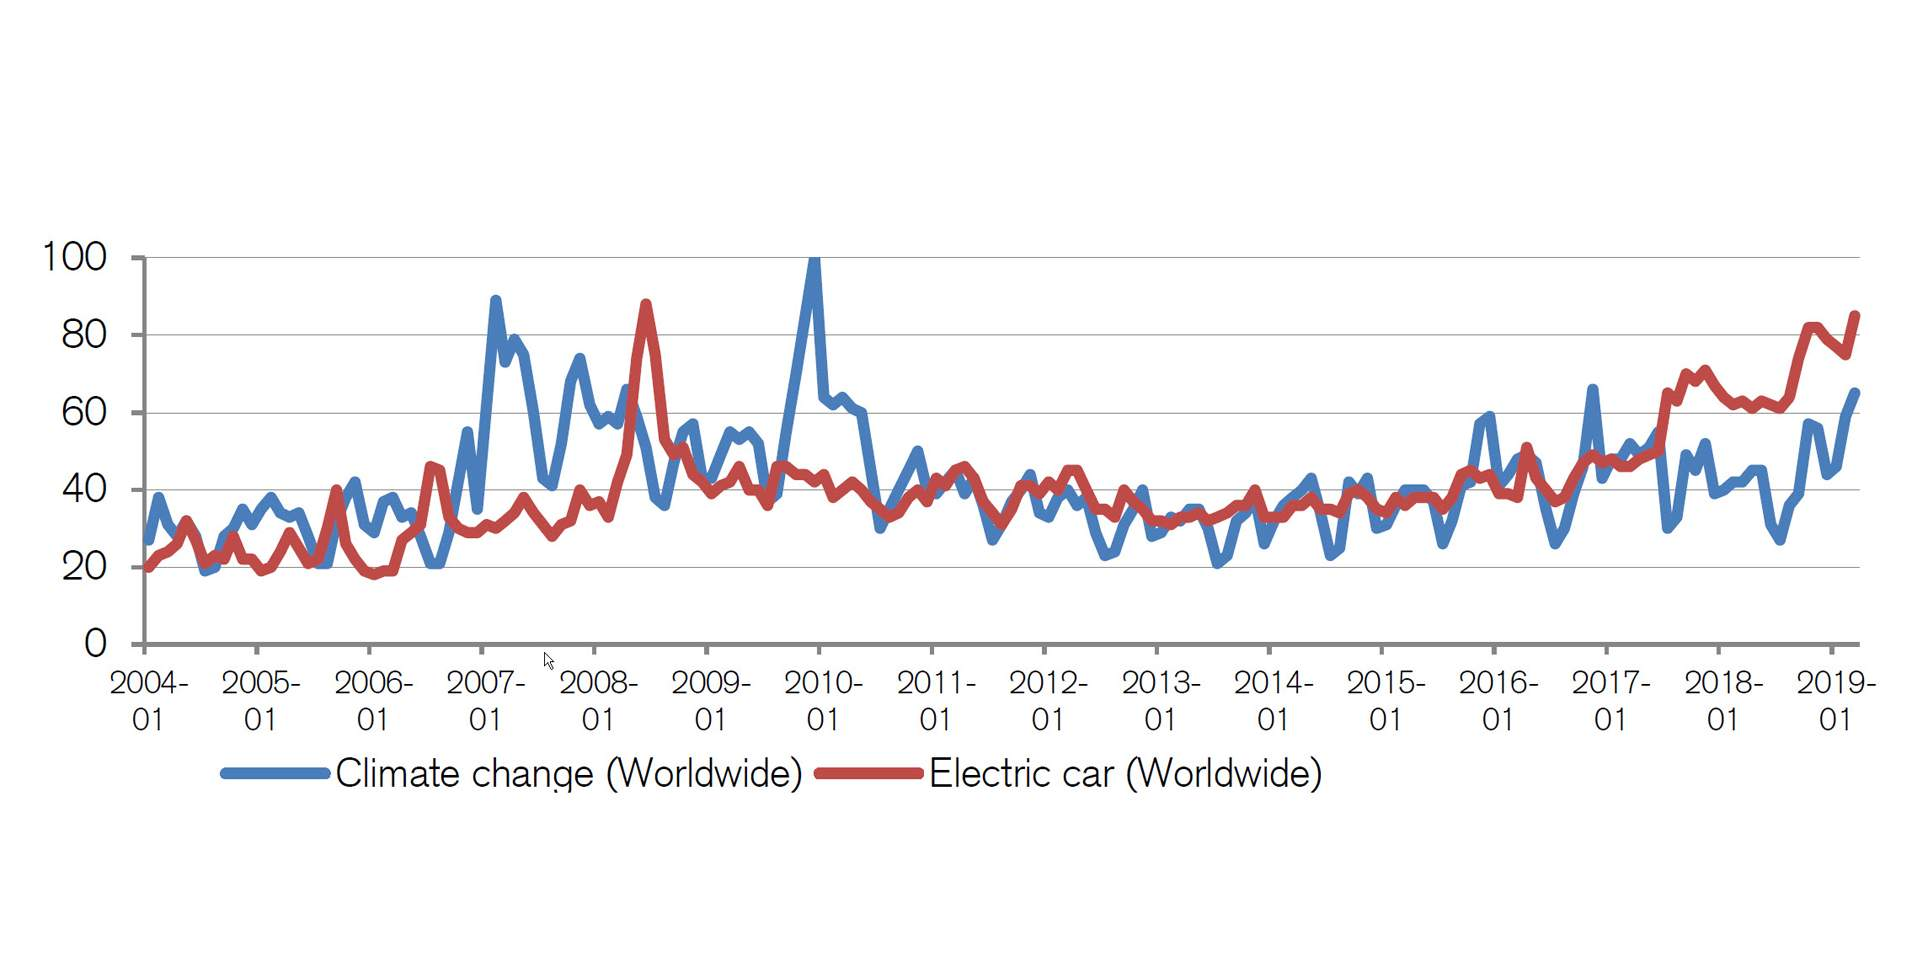 Google Trends Popularity Score of EVs and Climate Change